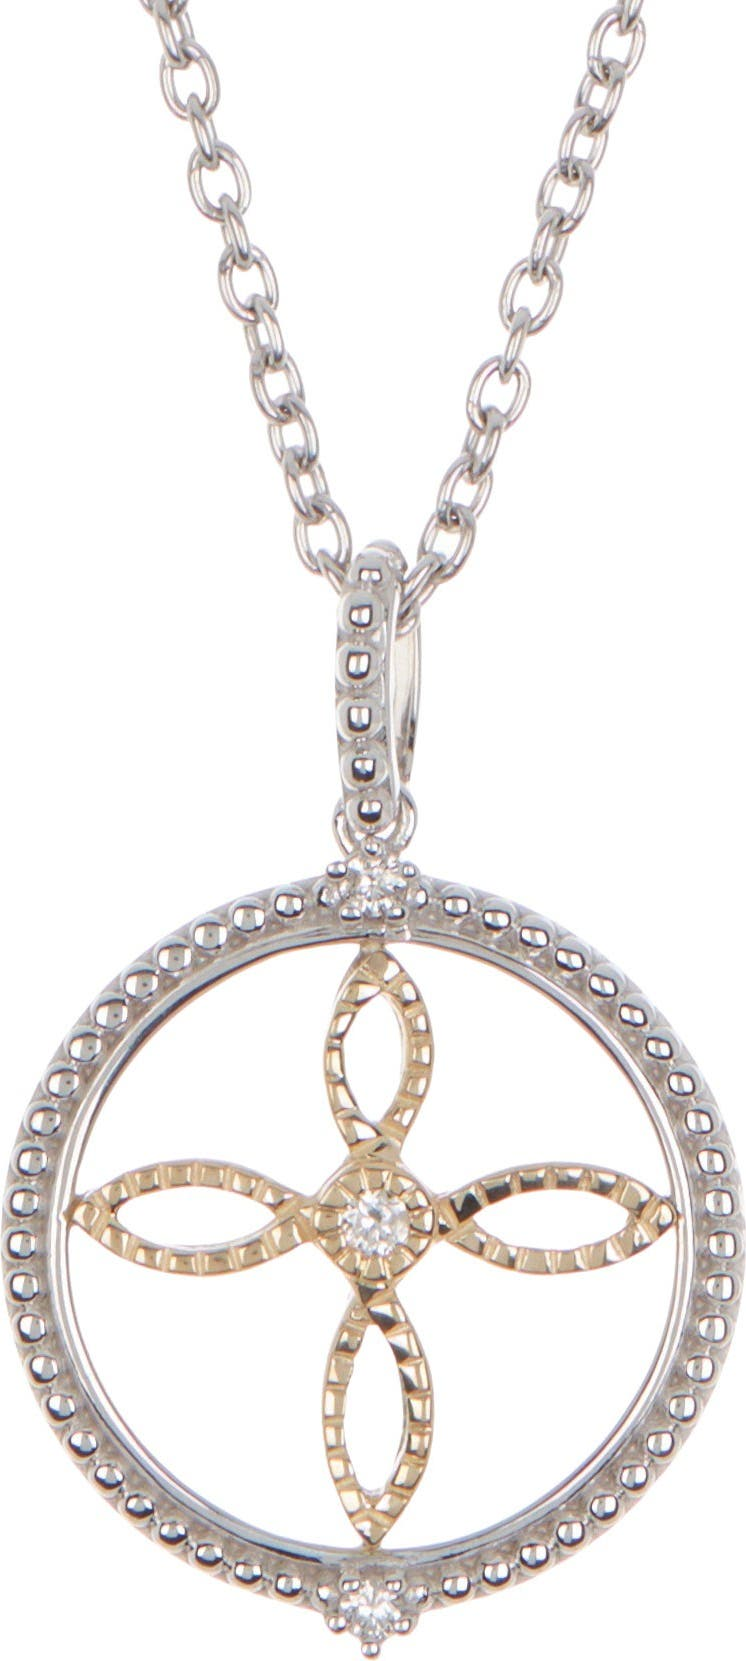 Details about  /14K Two-Tone Gold Passion Cross Charm Pendant MSRP $539